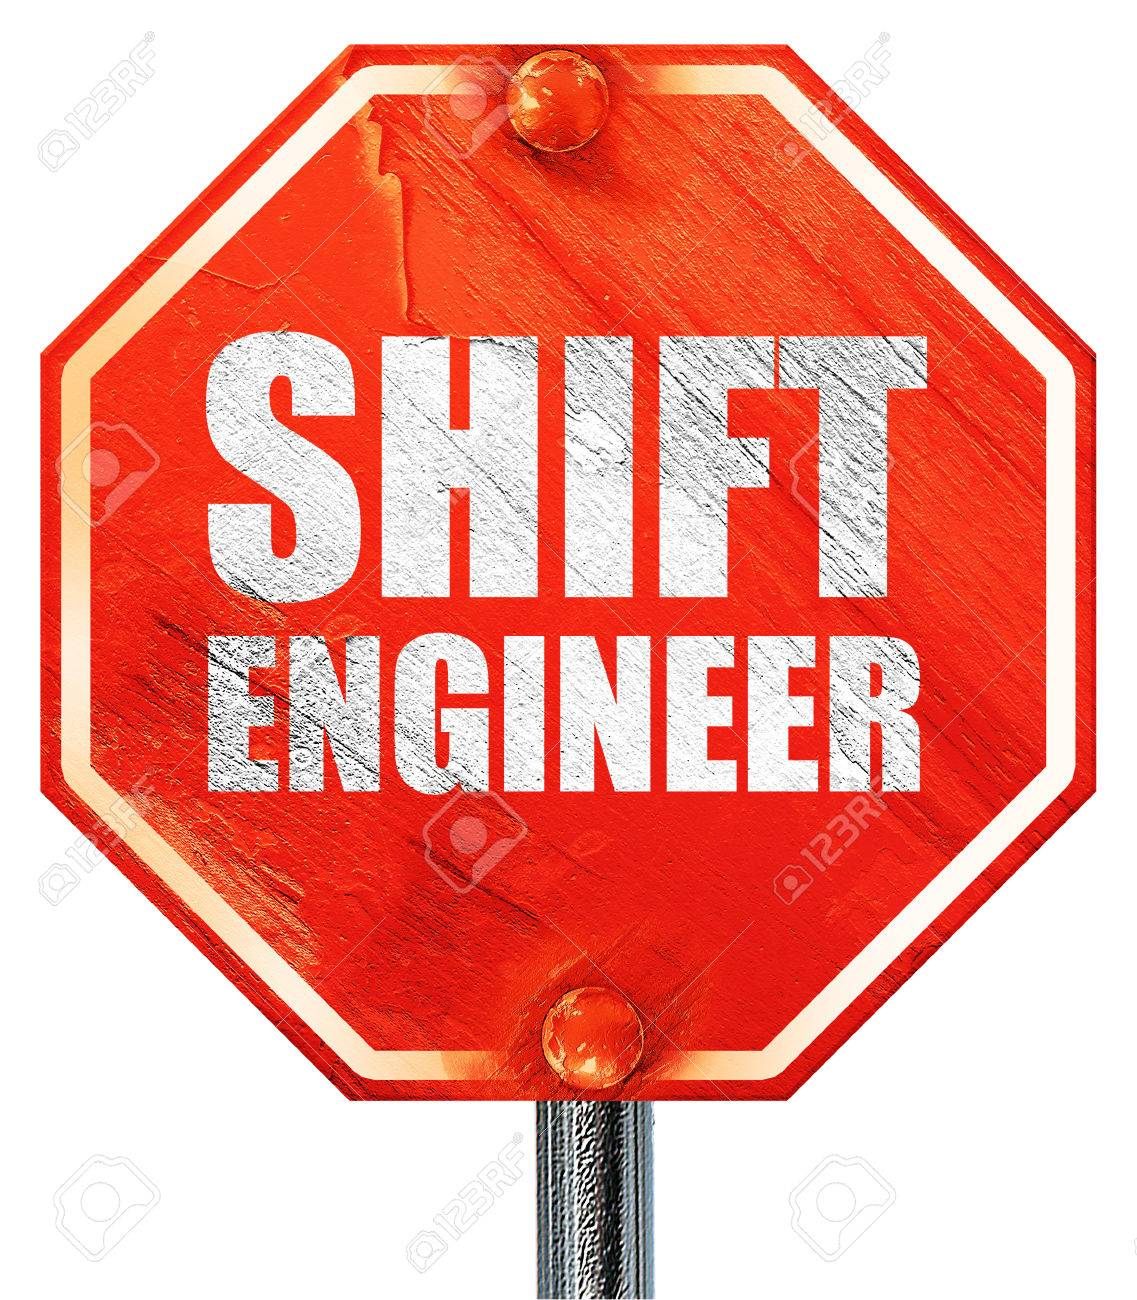 Image result for Shift Engineer